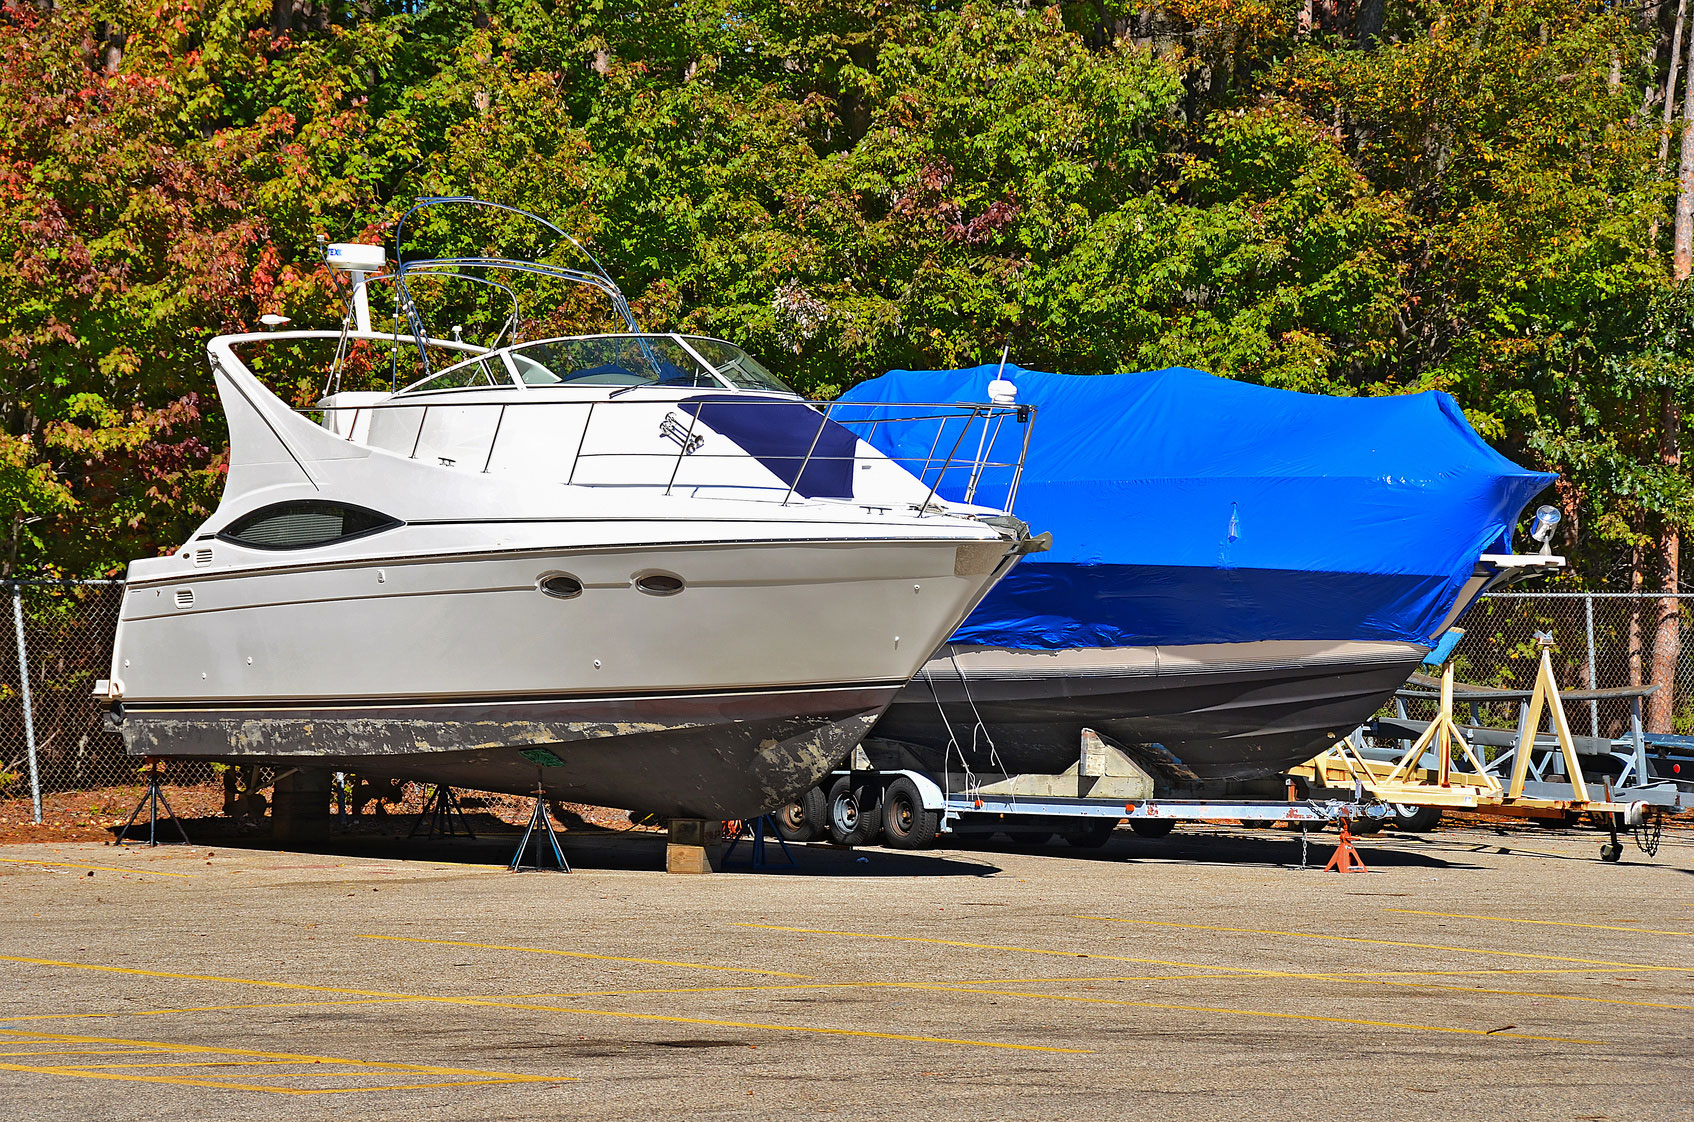 Safely Storing Your Boat for Winter